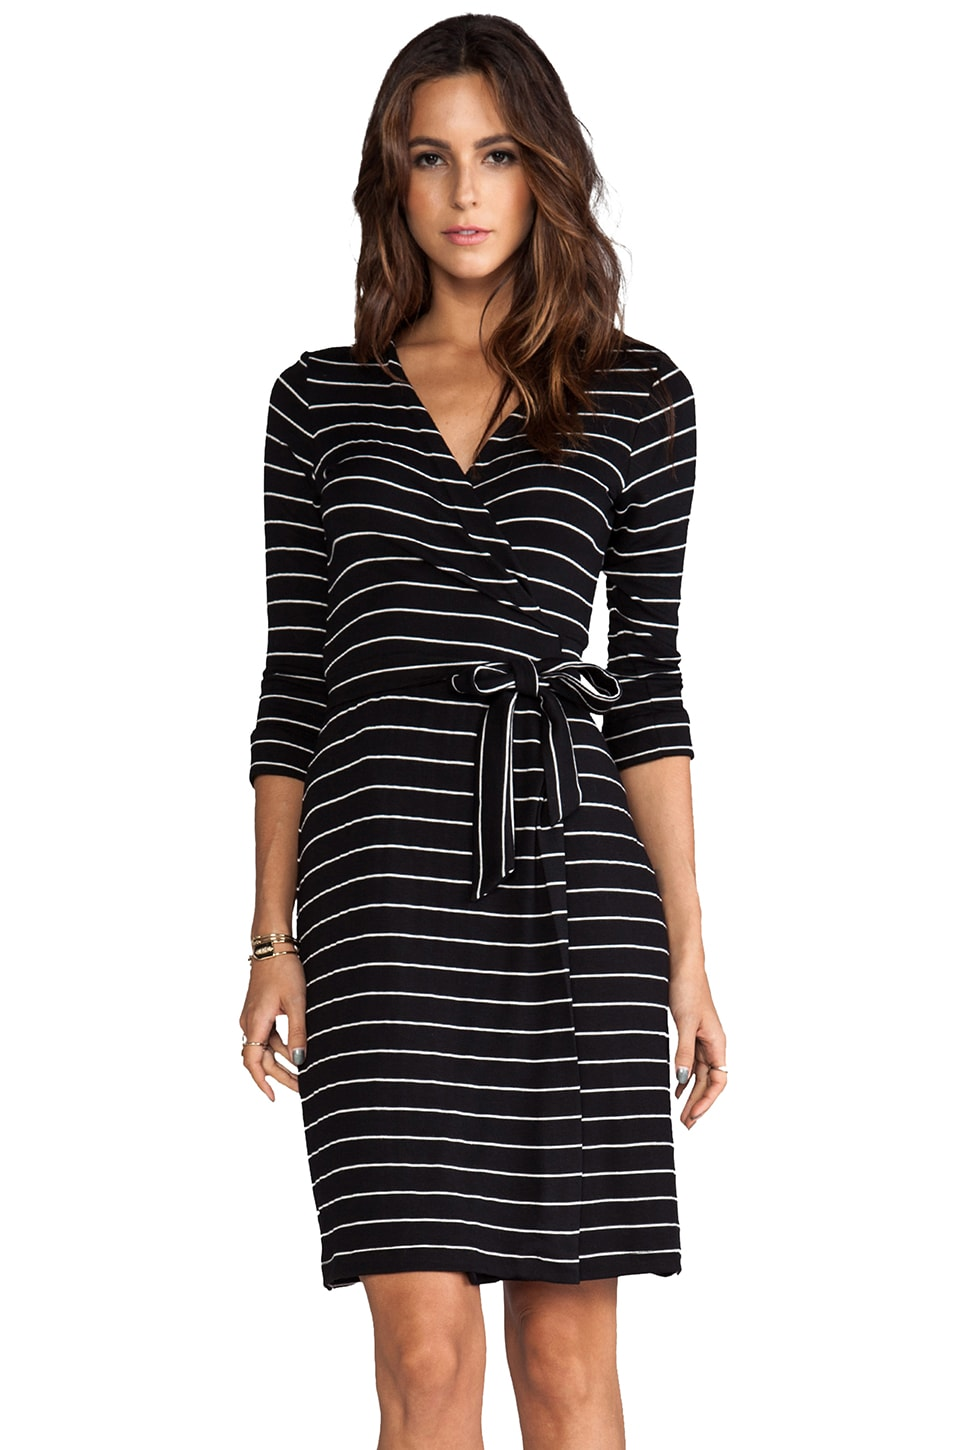 Saint Grace Moby Dylana Stripe Wrap Dress in Black/White